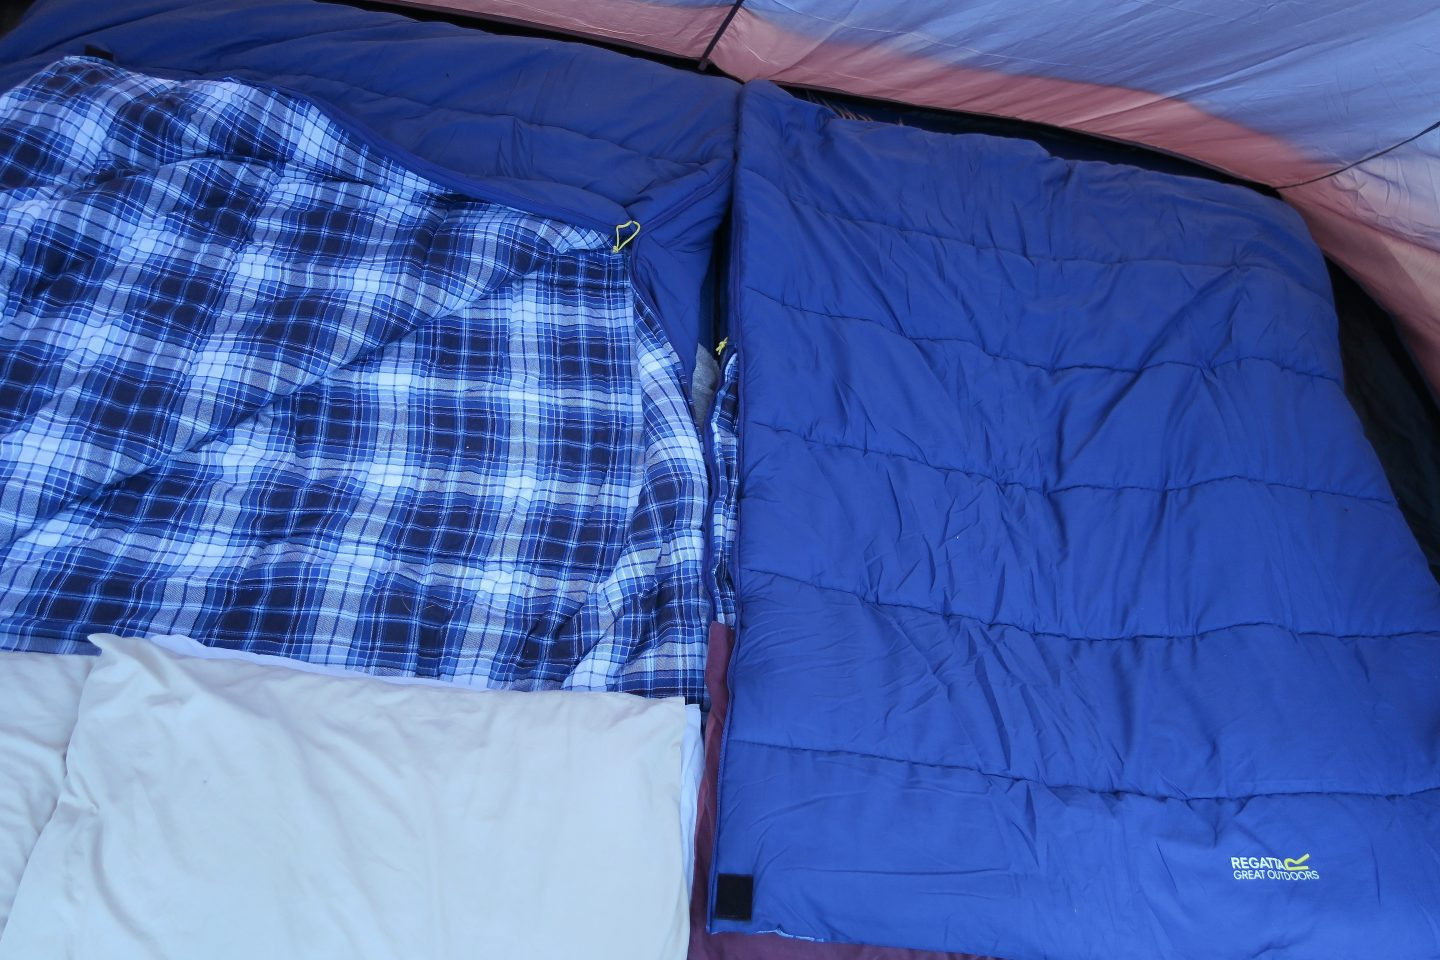 The bedroom set up inside a tent. Shows two double sleeping bags next to each other. They are blue and the inside is a blue check.